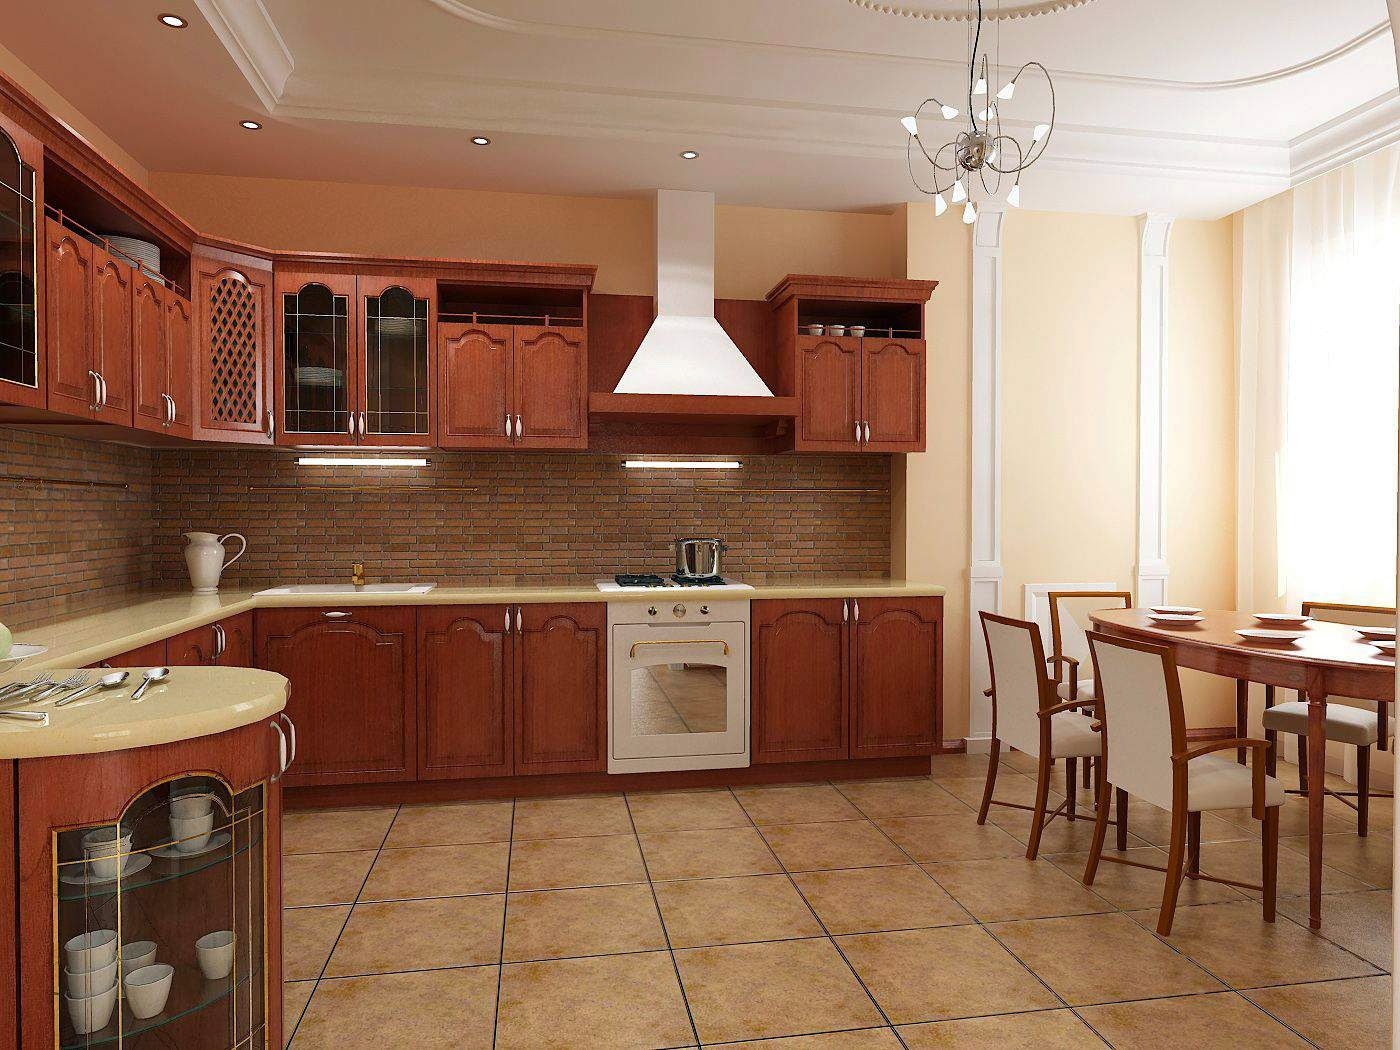 home interior design for 3bhk flat home interior design for 3bhk flat 3 bhk home interior design furnished 5 bhk flat